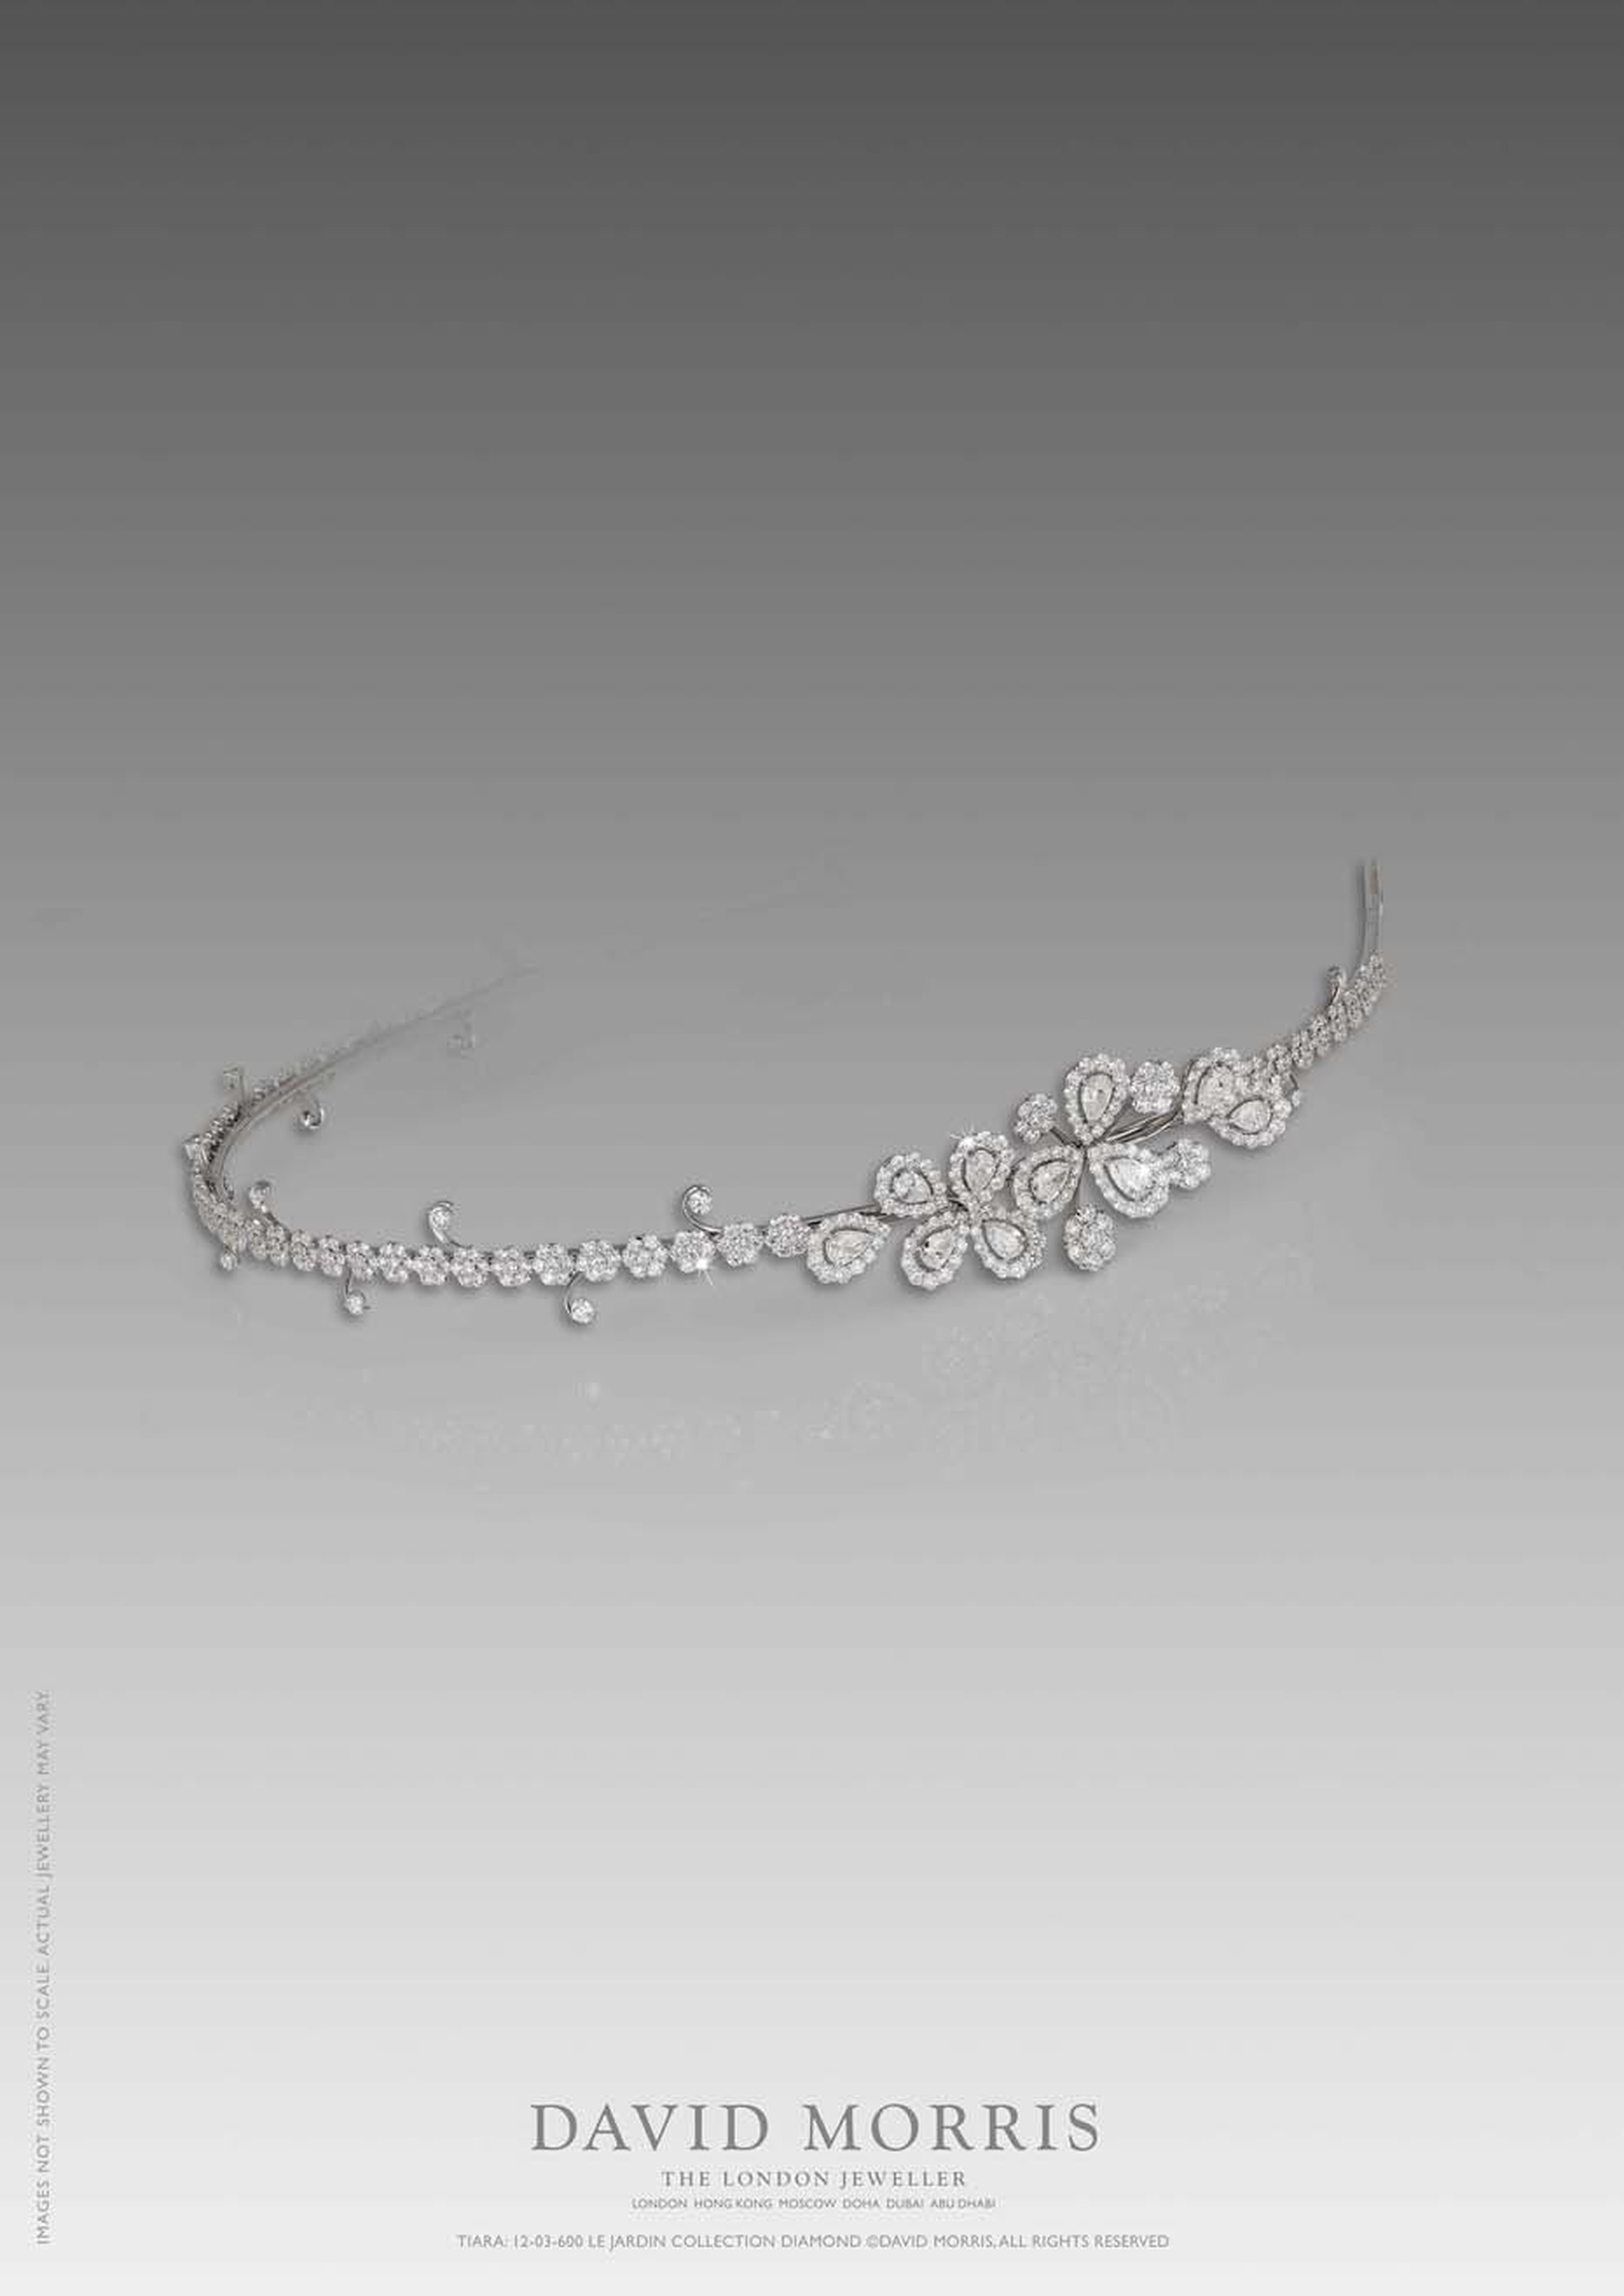 This pretty white gold and diamond headpiece from David Morris jewellery would make a stunning bridal tiara.